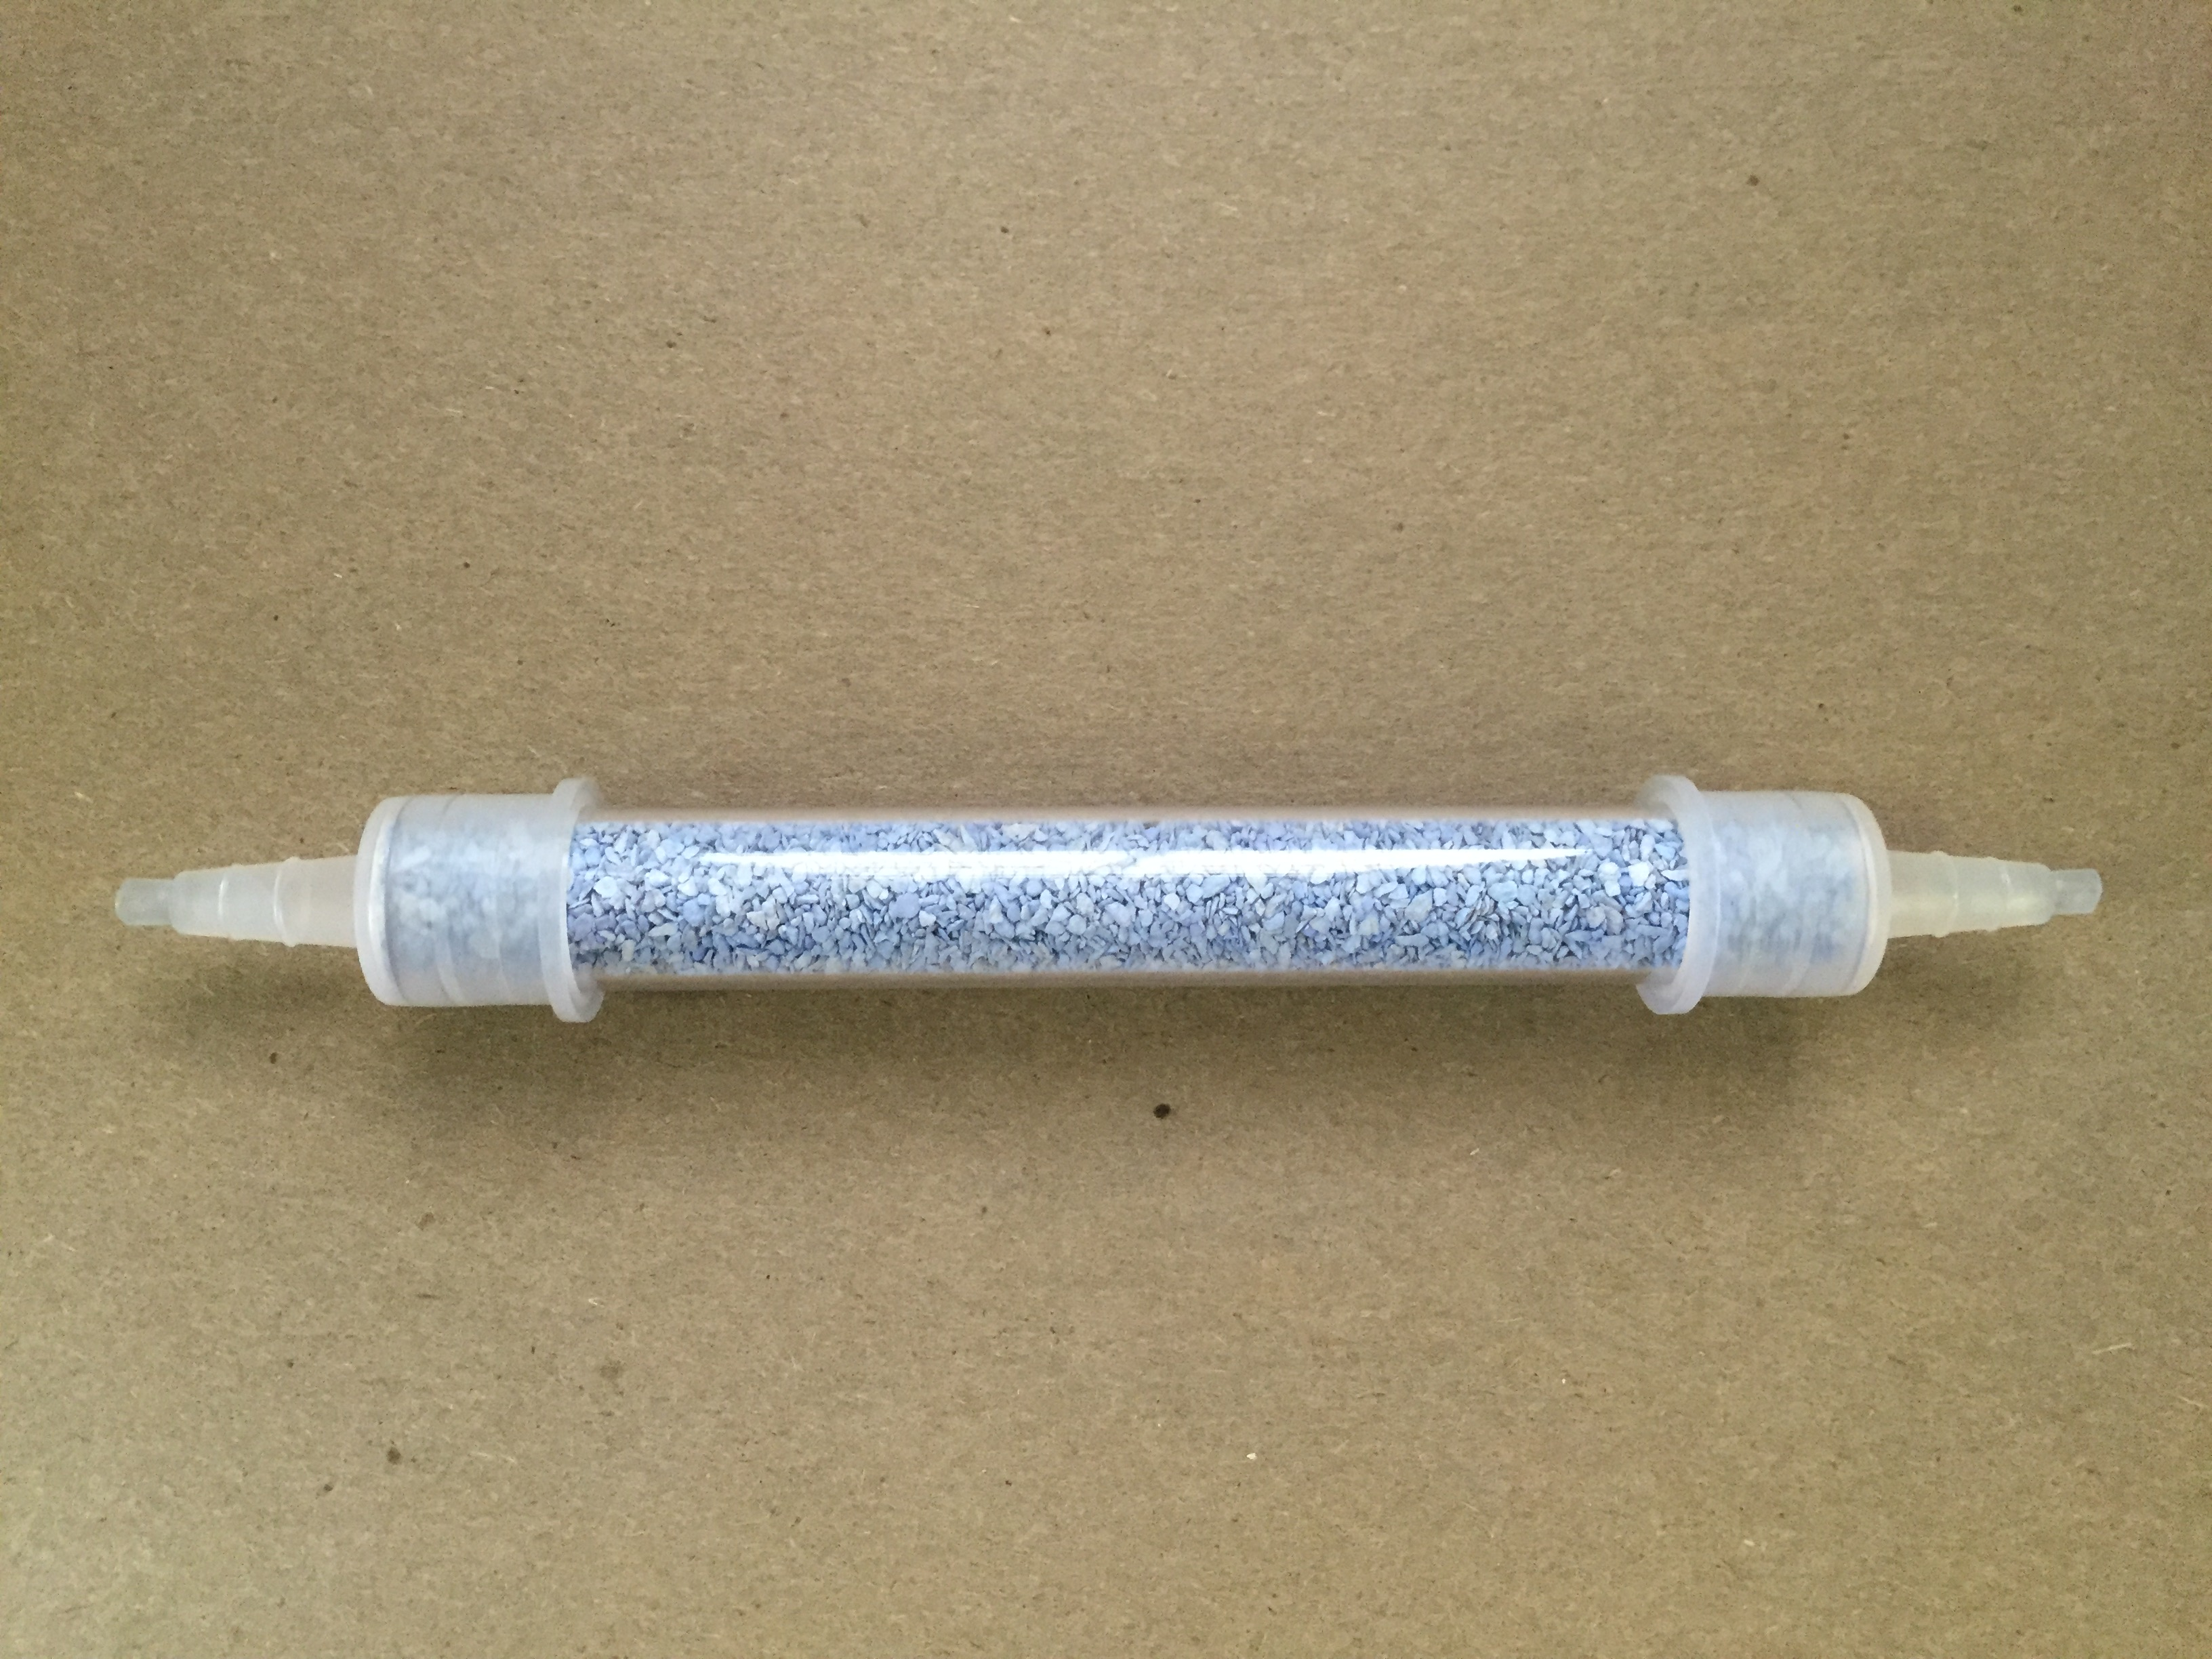 Drierite Drying Tube For Air And Gases